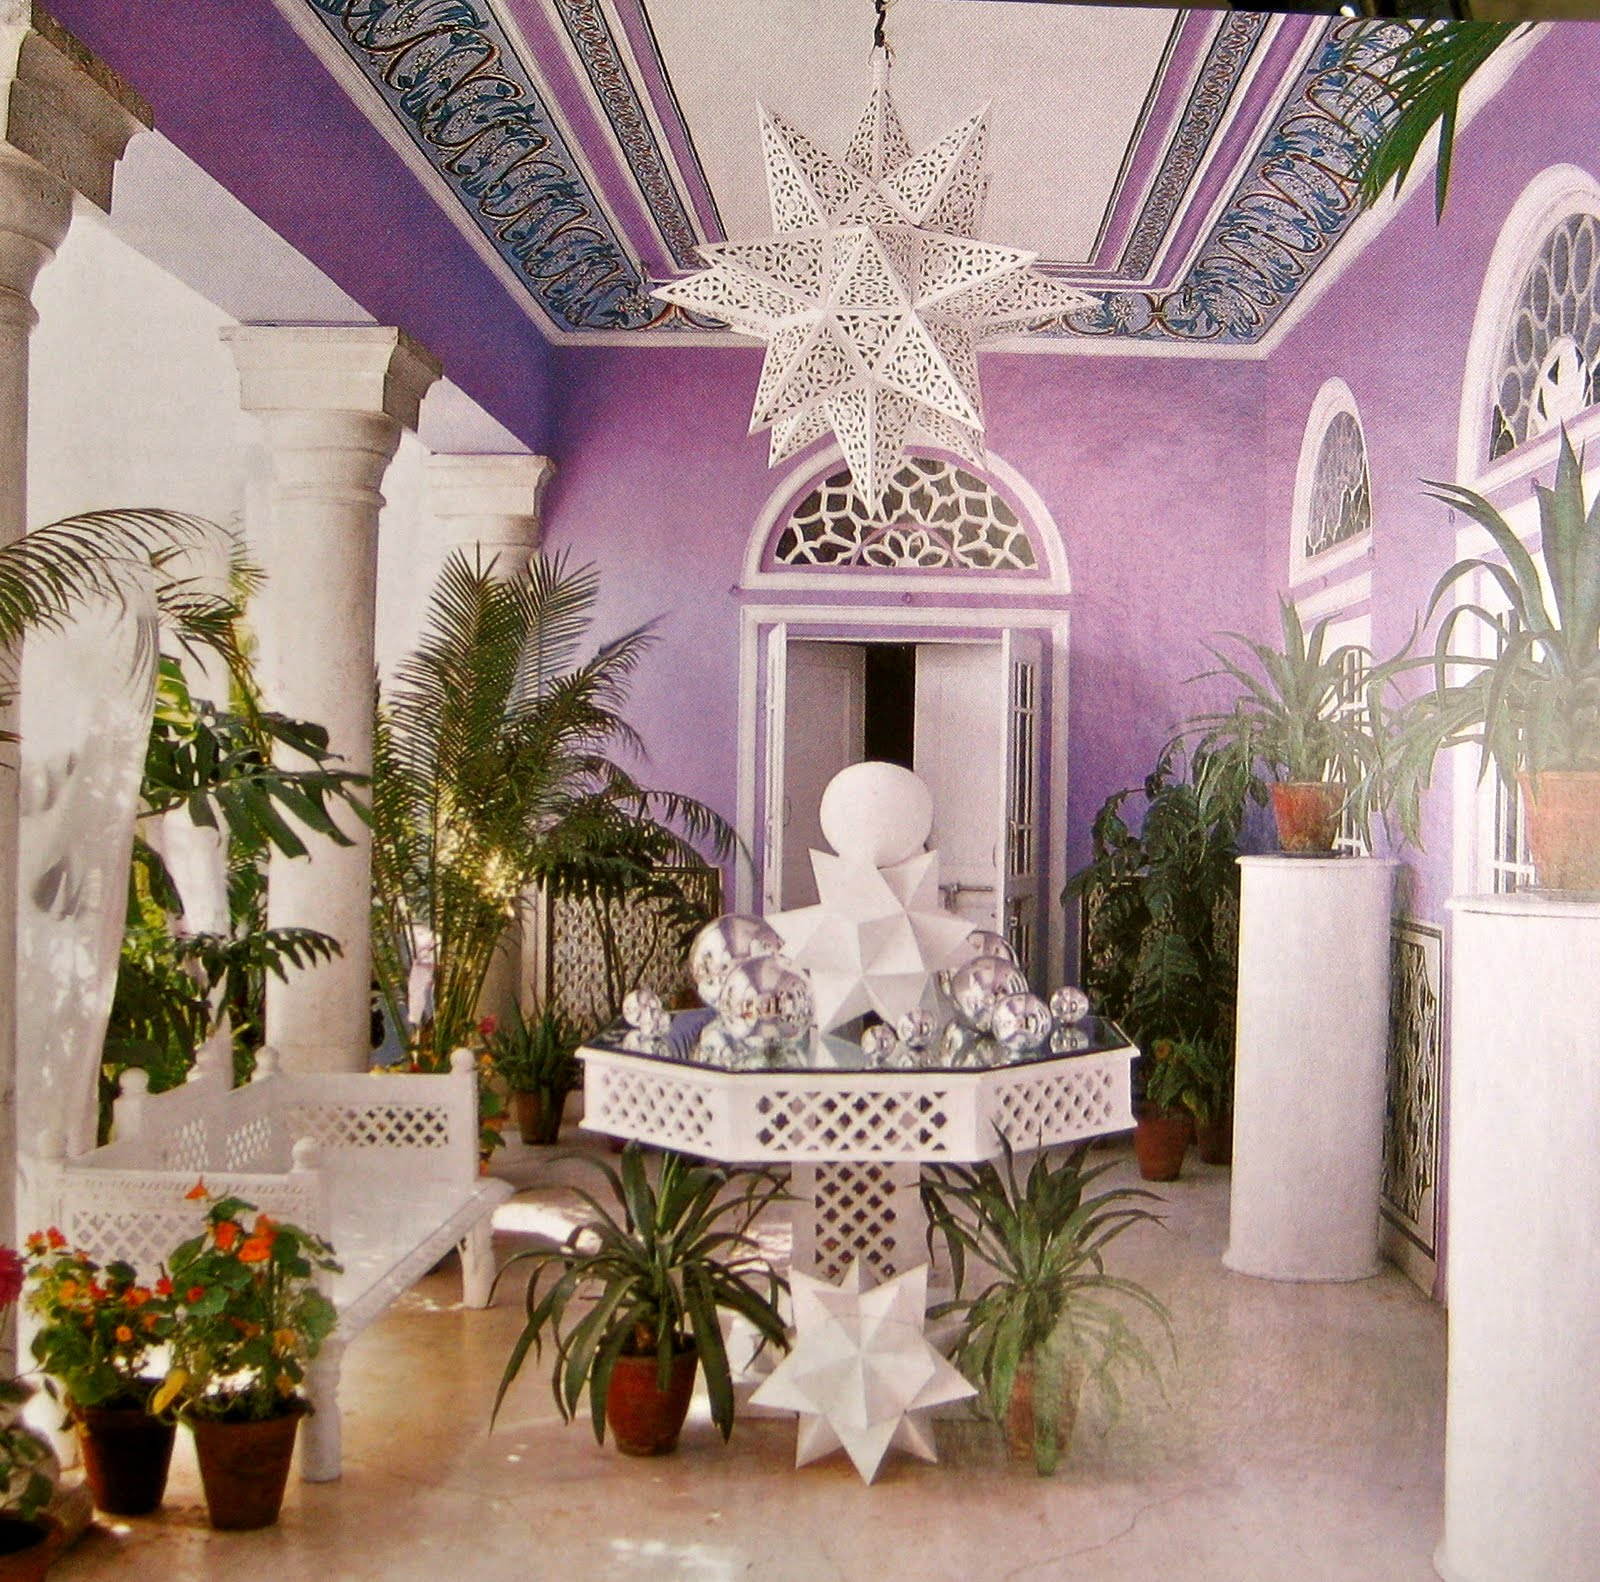 Indian Inspired Wall Decor Home Decorating Ideas Indian Style Captivating Home Decor On